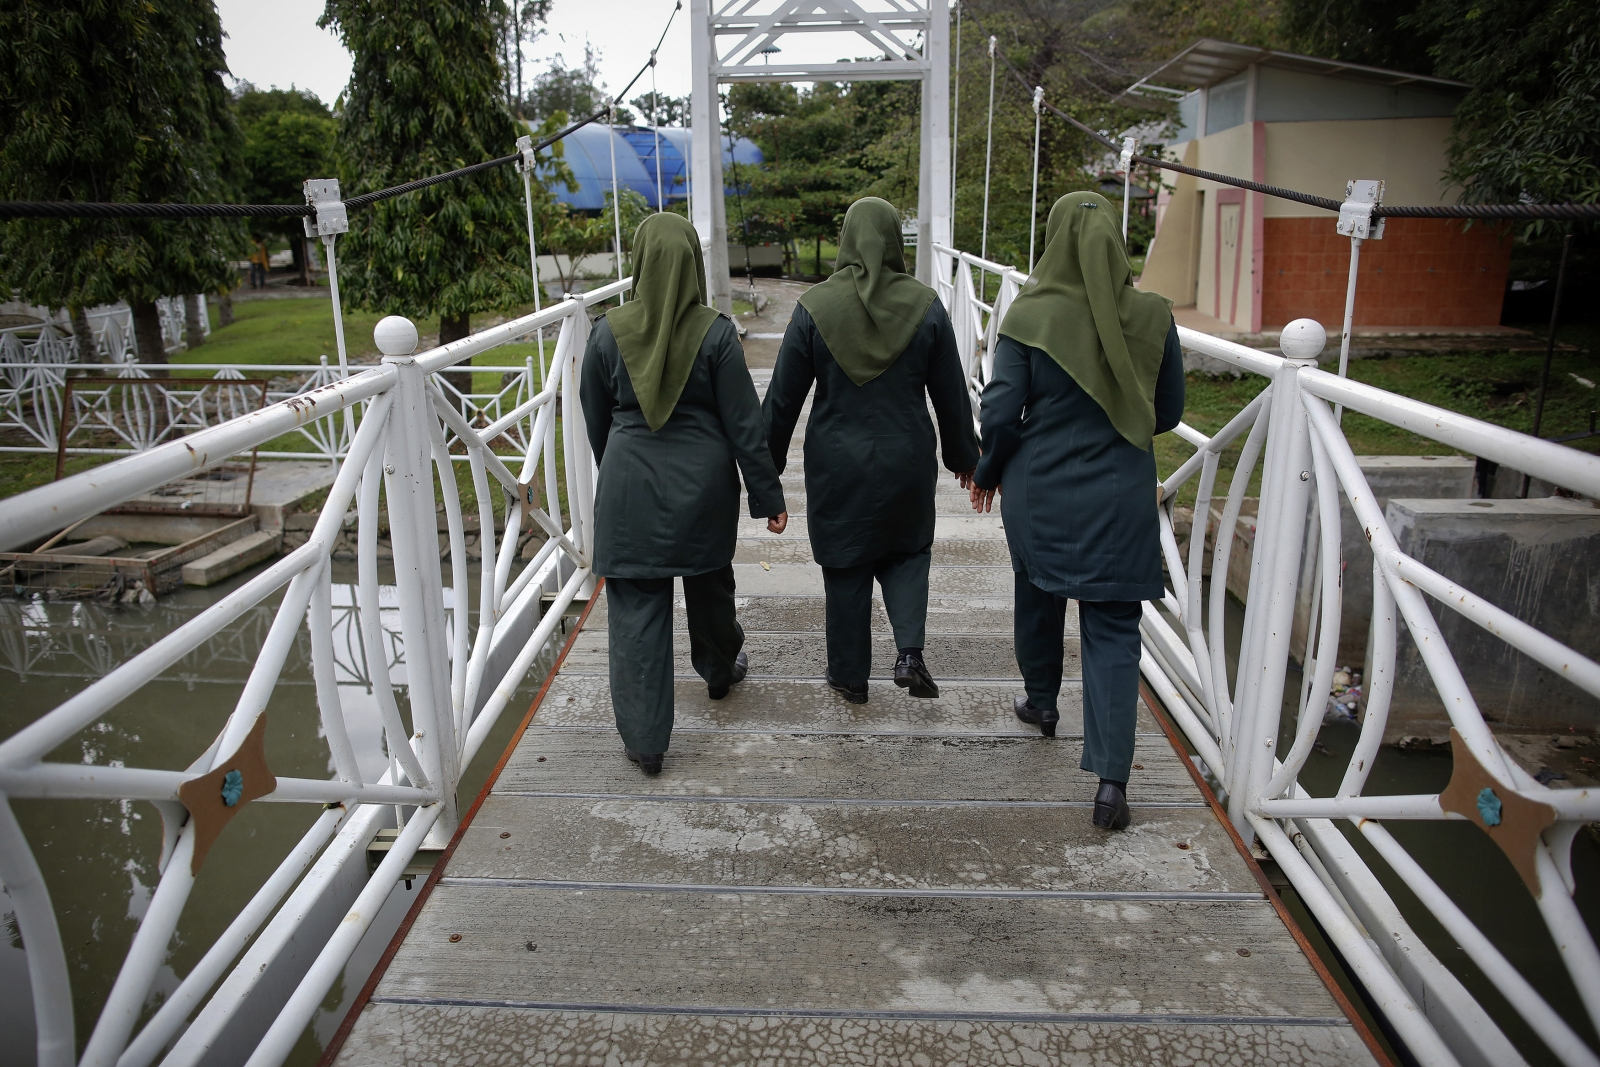 Female members of the sharia police force known as Wilayatul Hisbah (WH) enter a public park as they search for those violating the law during their patrol in Banda Aceh December 6, 2012